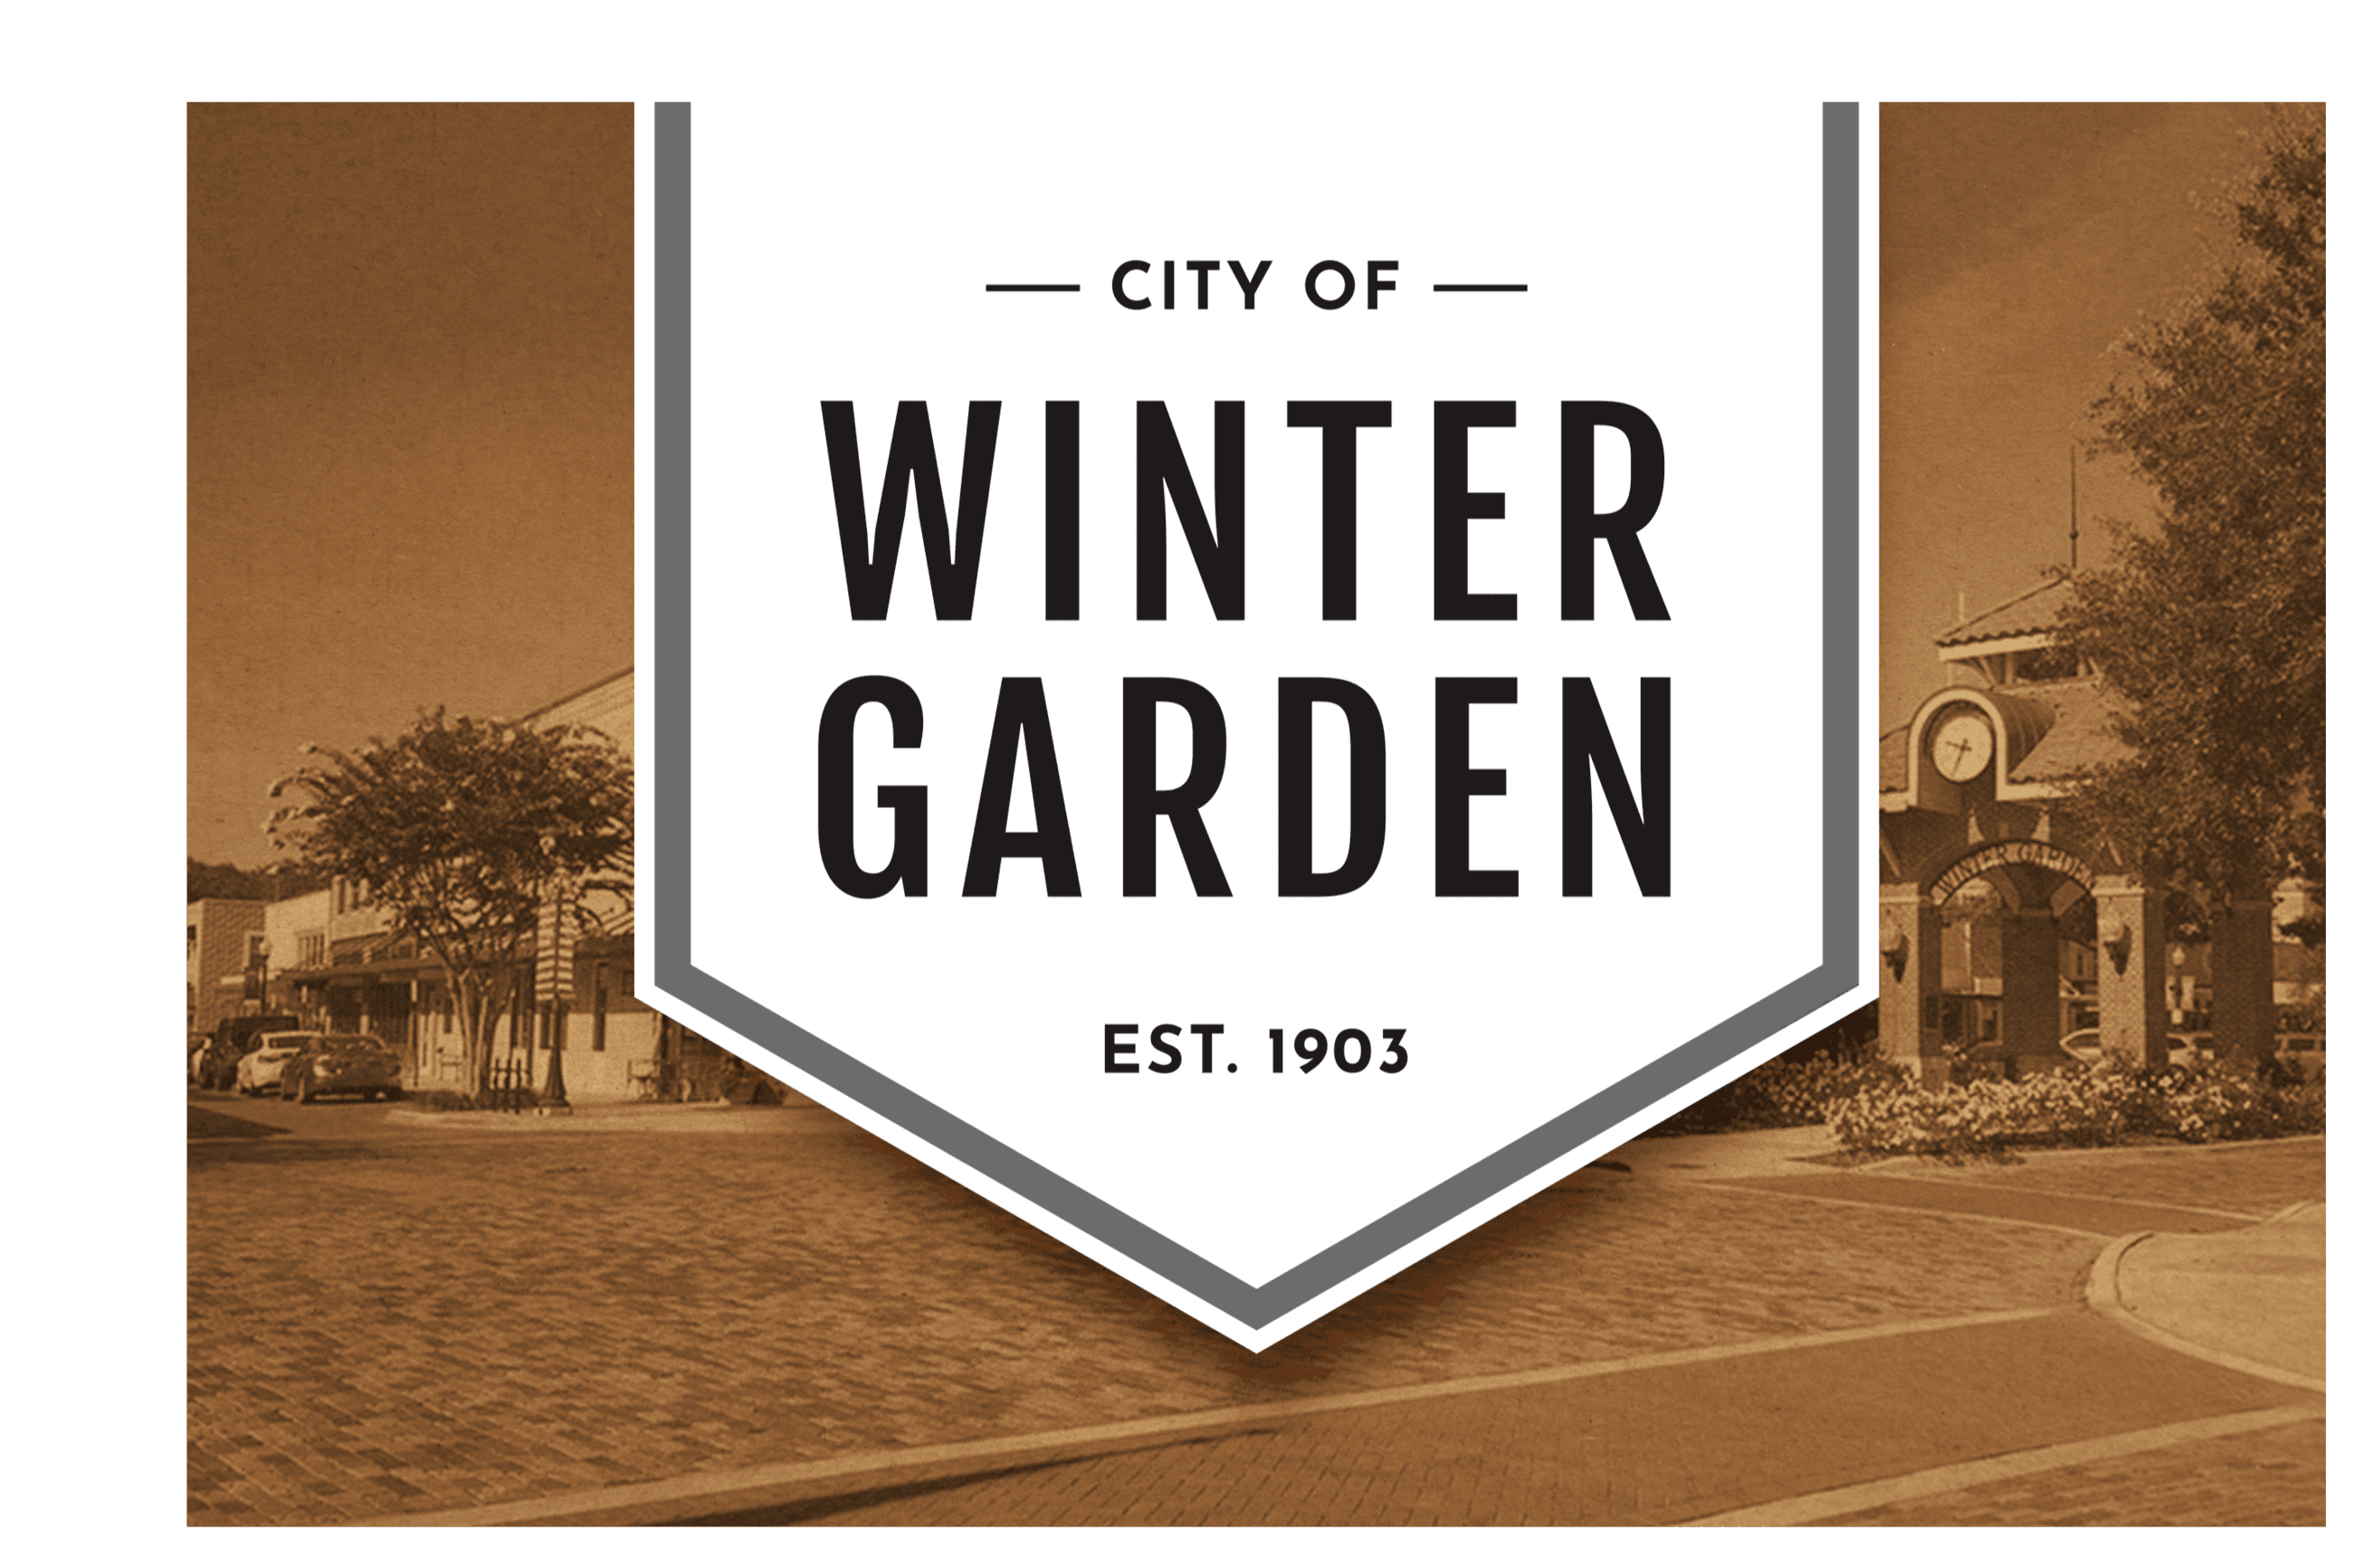 City of Winter Garden Banner in black and white